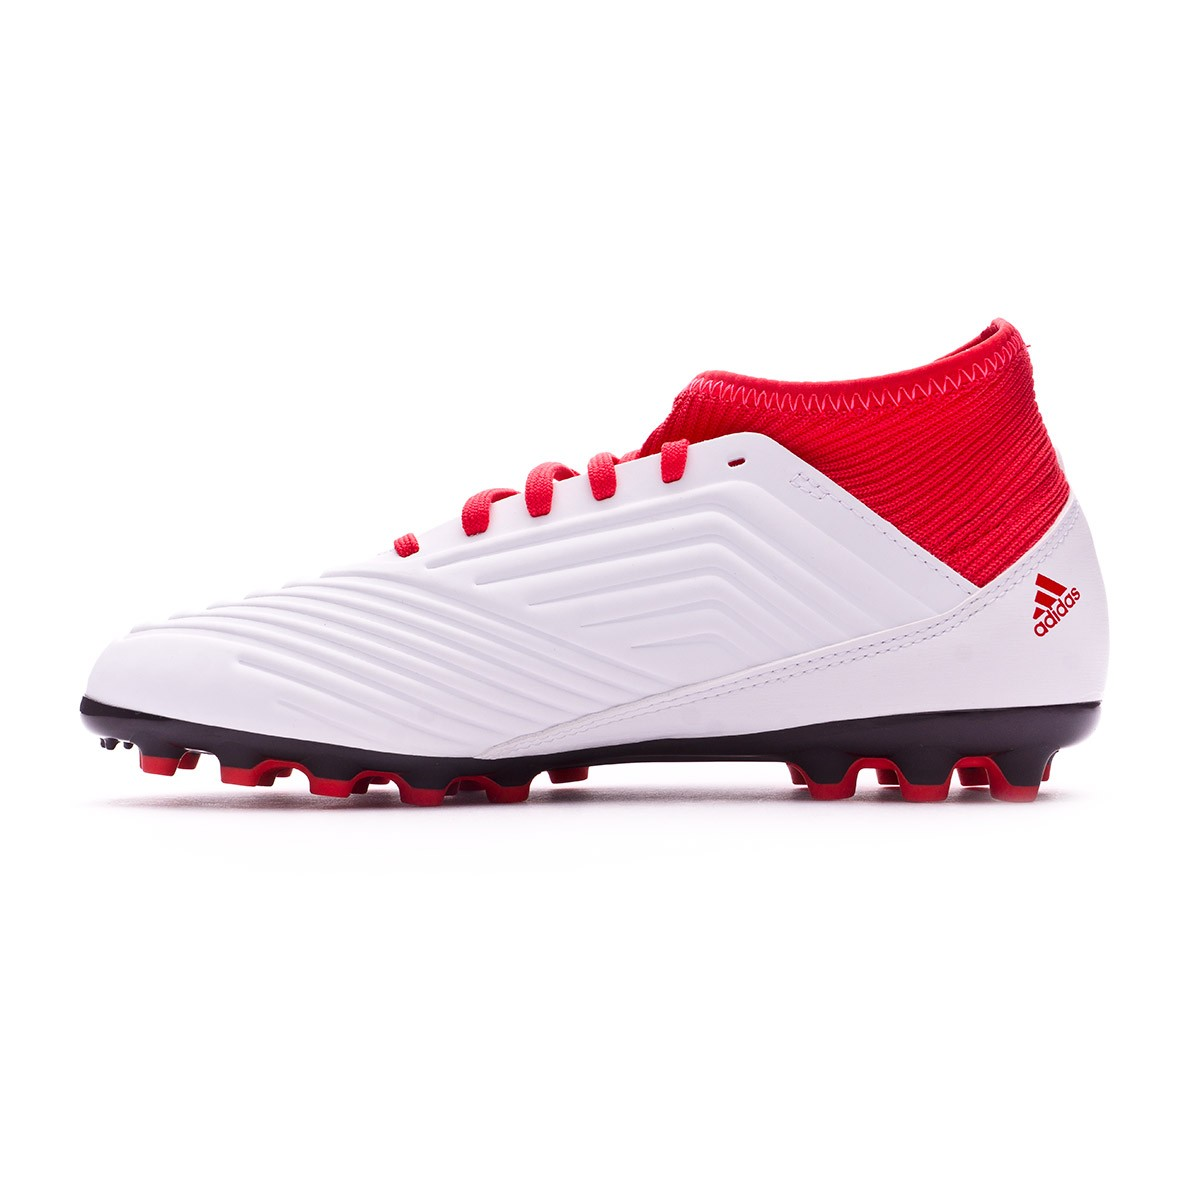 51d3f68a6de Football Boots adidas Kids Predator 18.3 AG White-Core black-Real coral -  Football store Fútbol Emotion